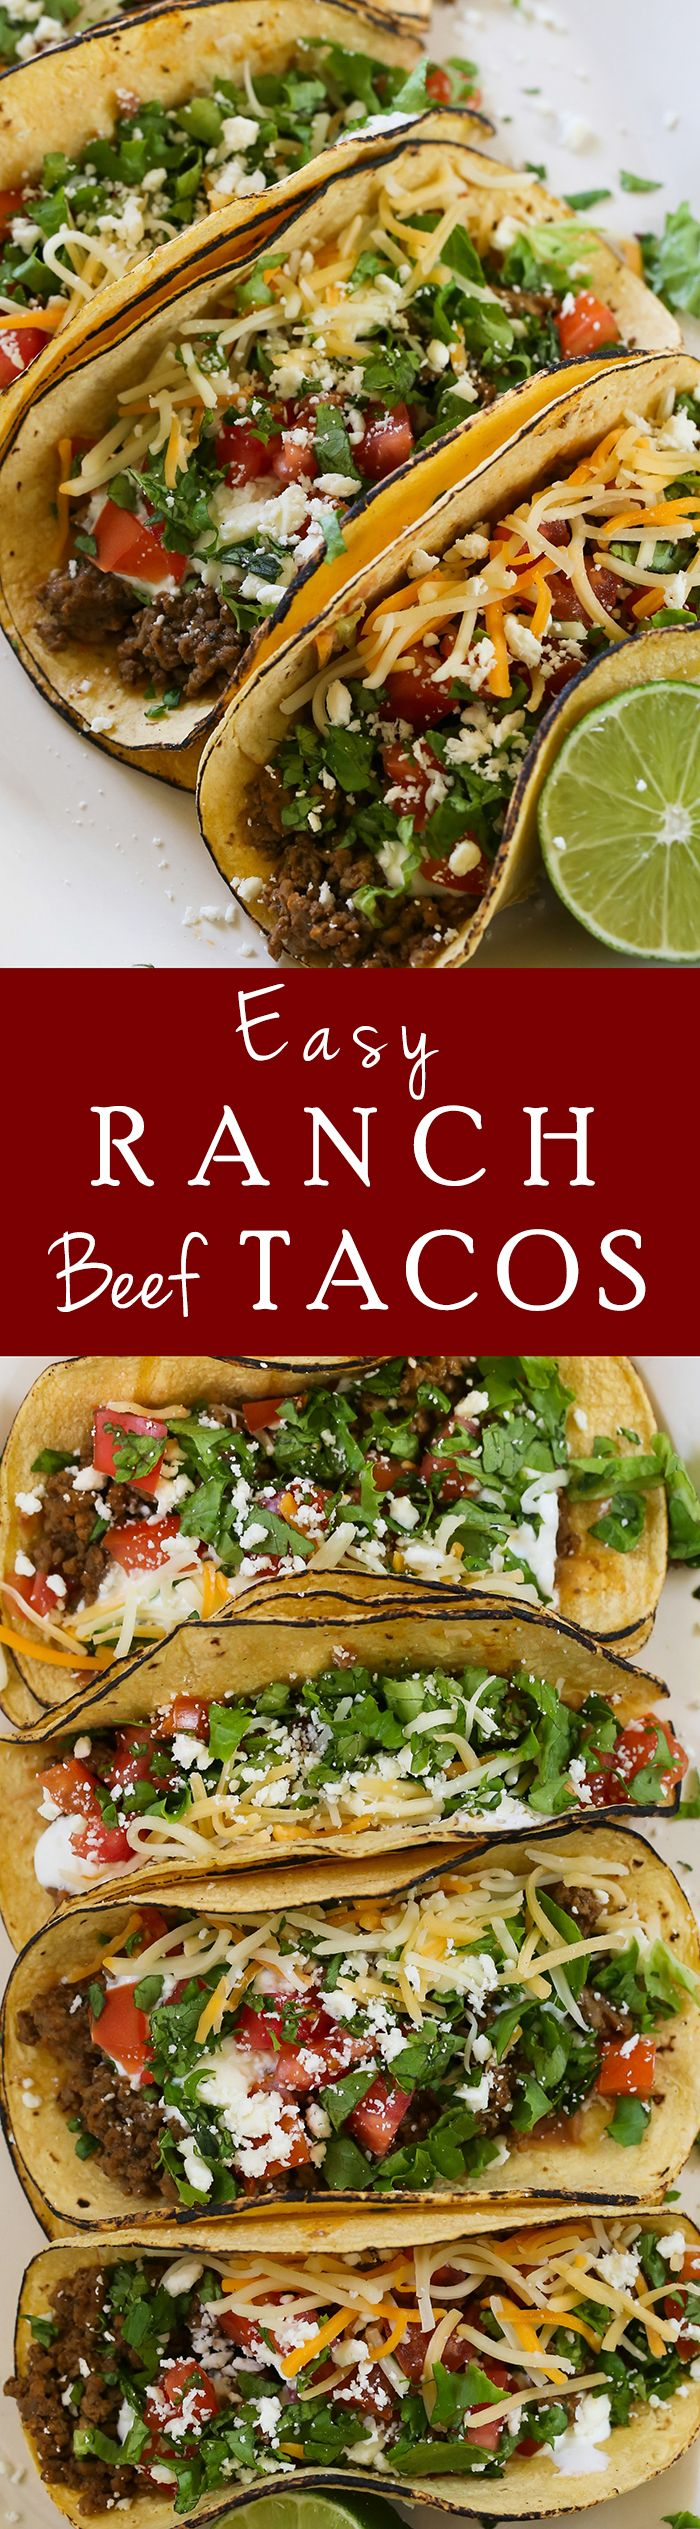 Ranch Beef Tacos - You've never had ground beef tacos this good before! Made with easy ingredients in 25 minutes!!!